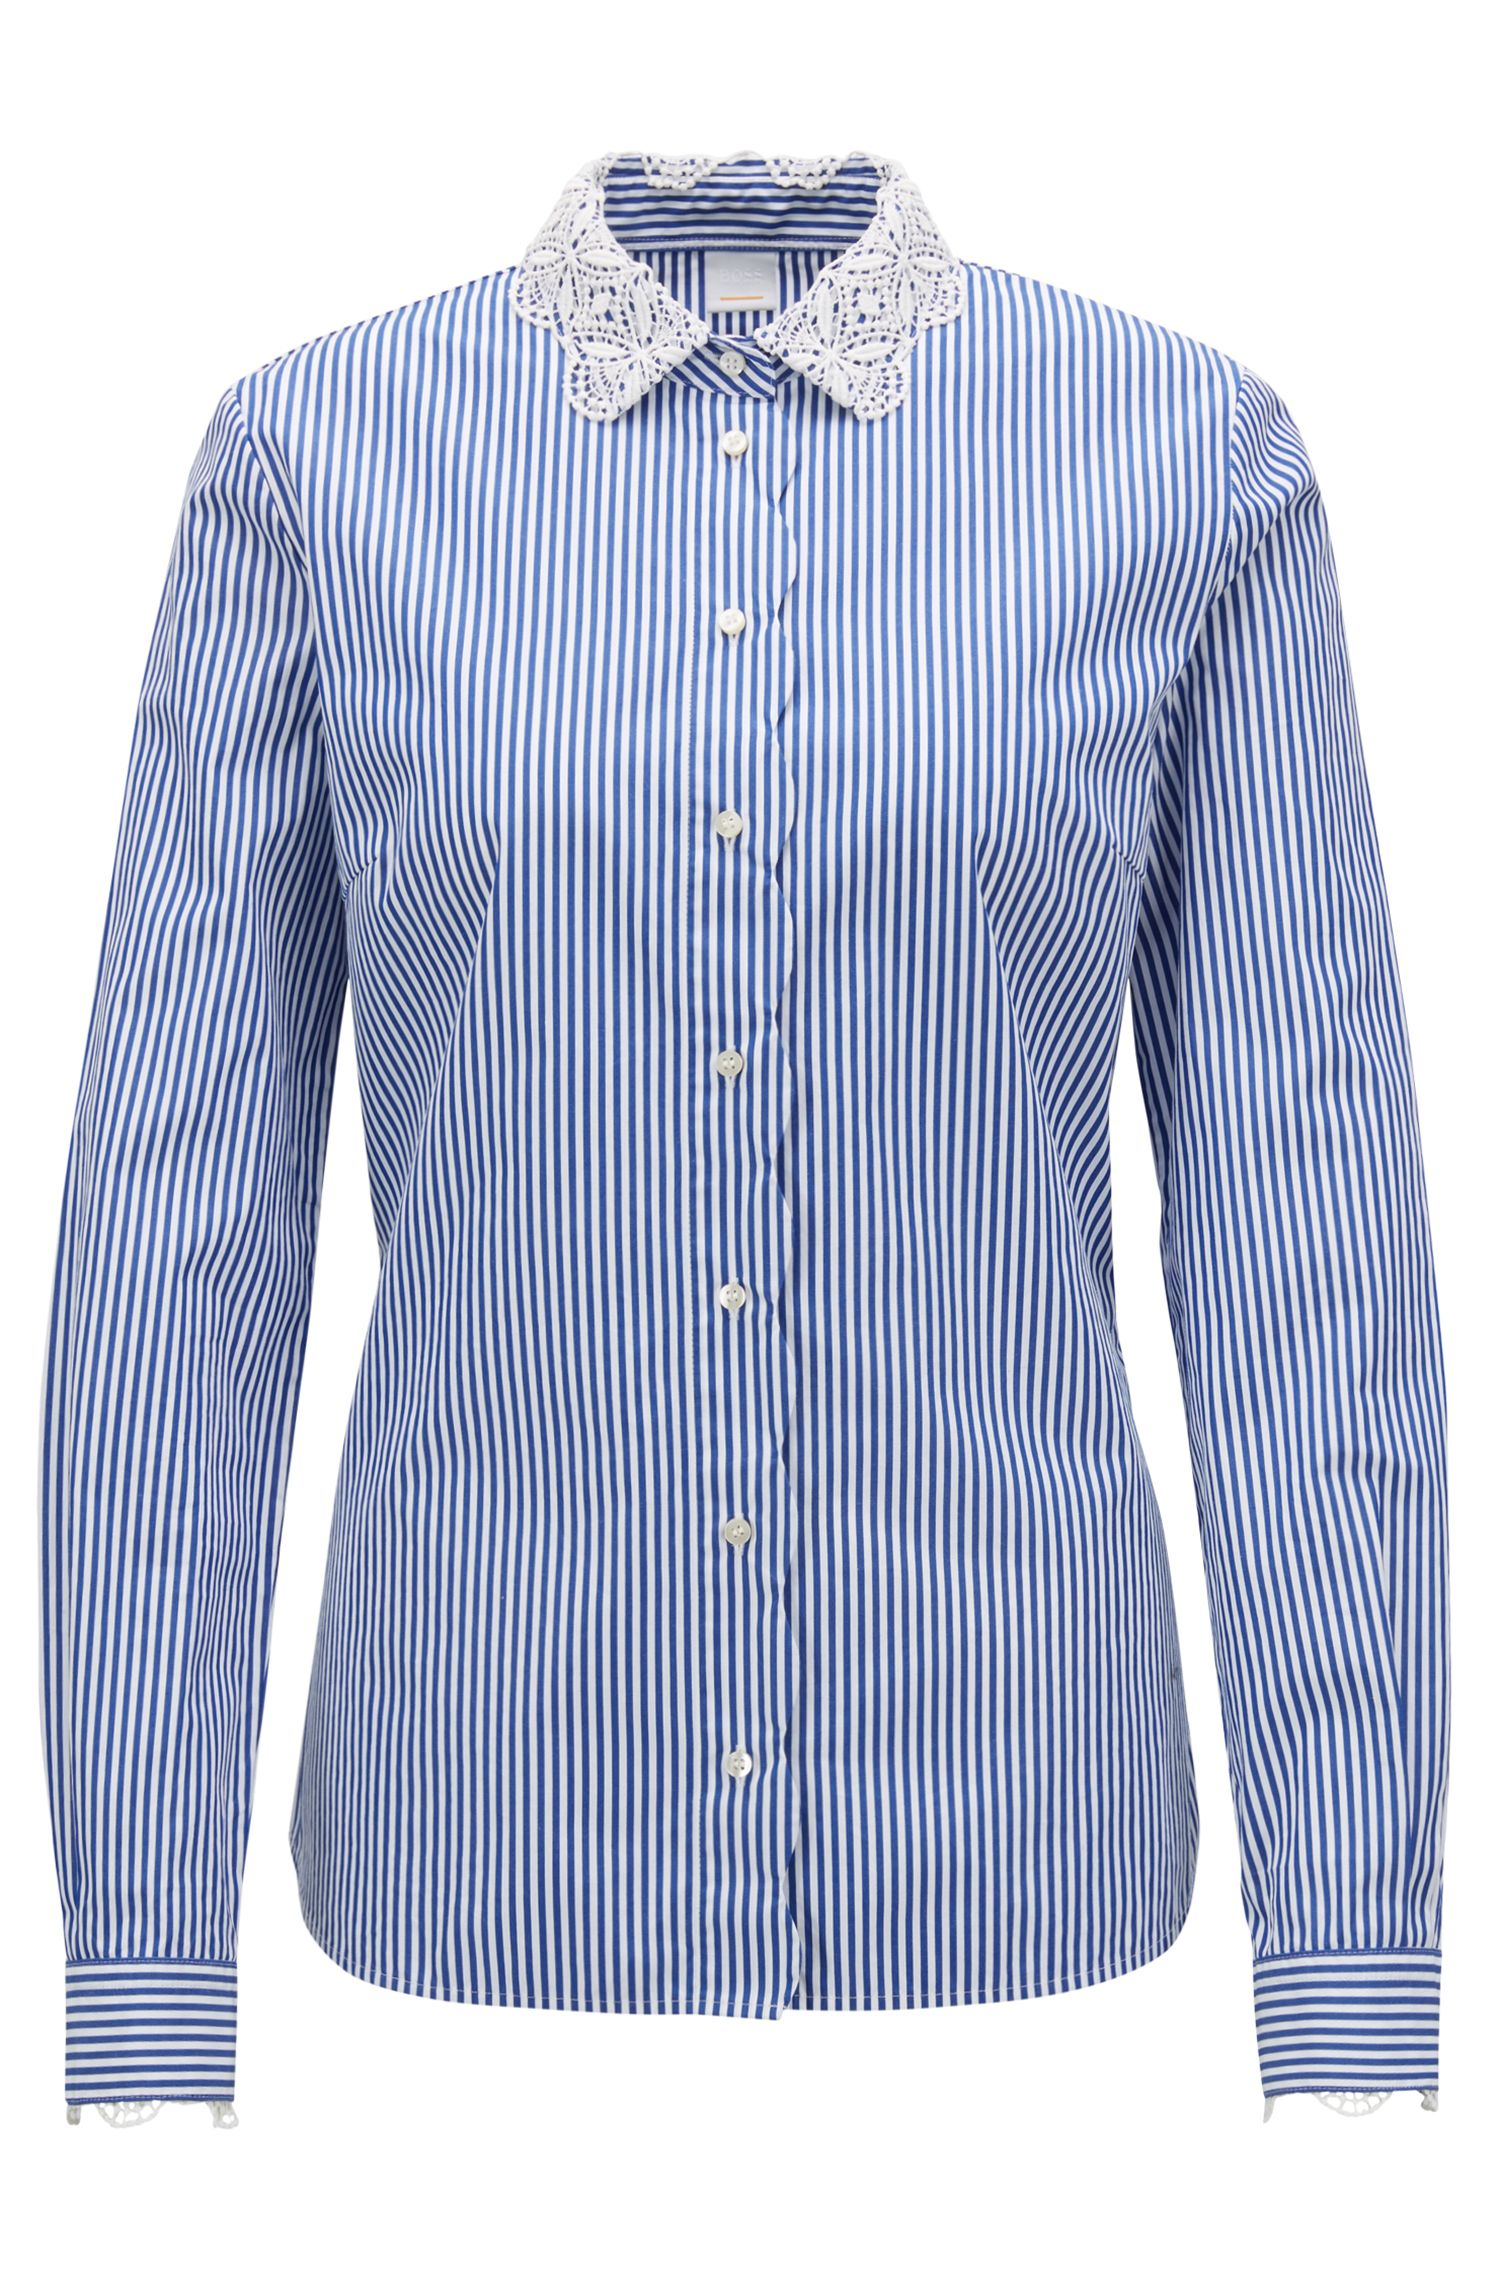 Striped blouse in cotton with lace and scalloping detail, Blue